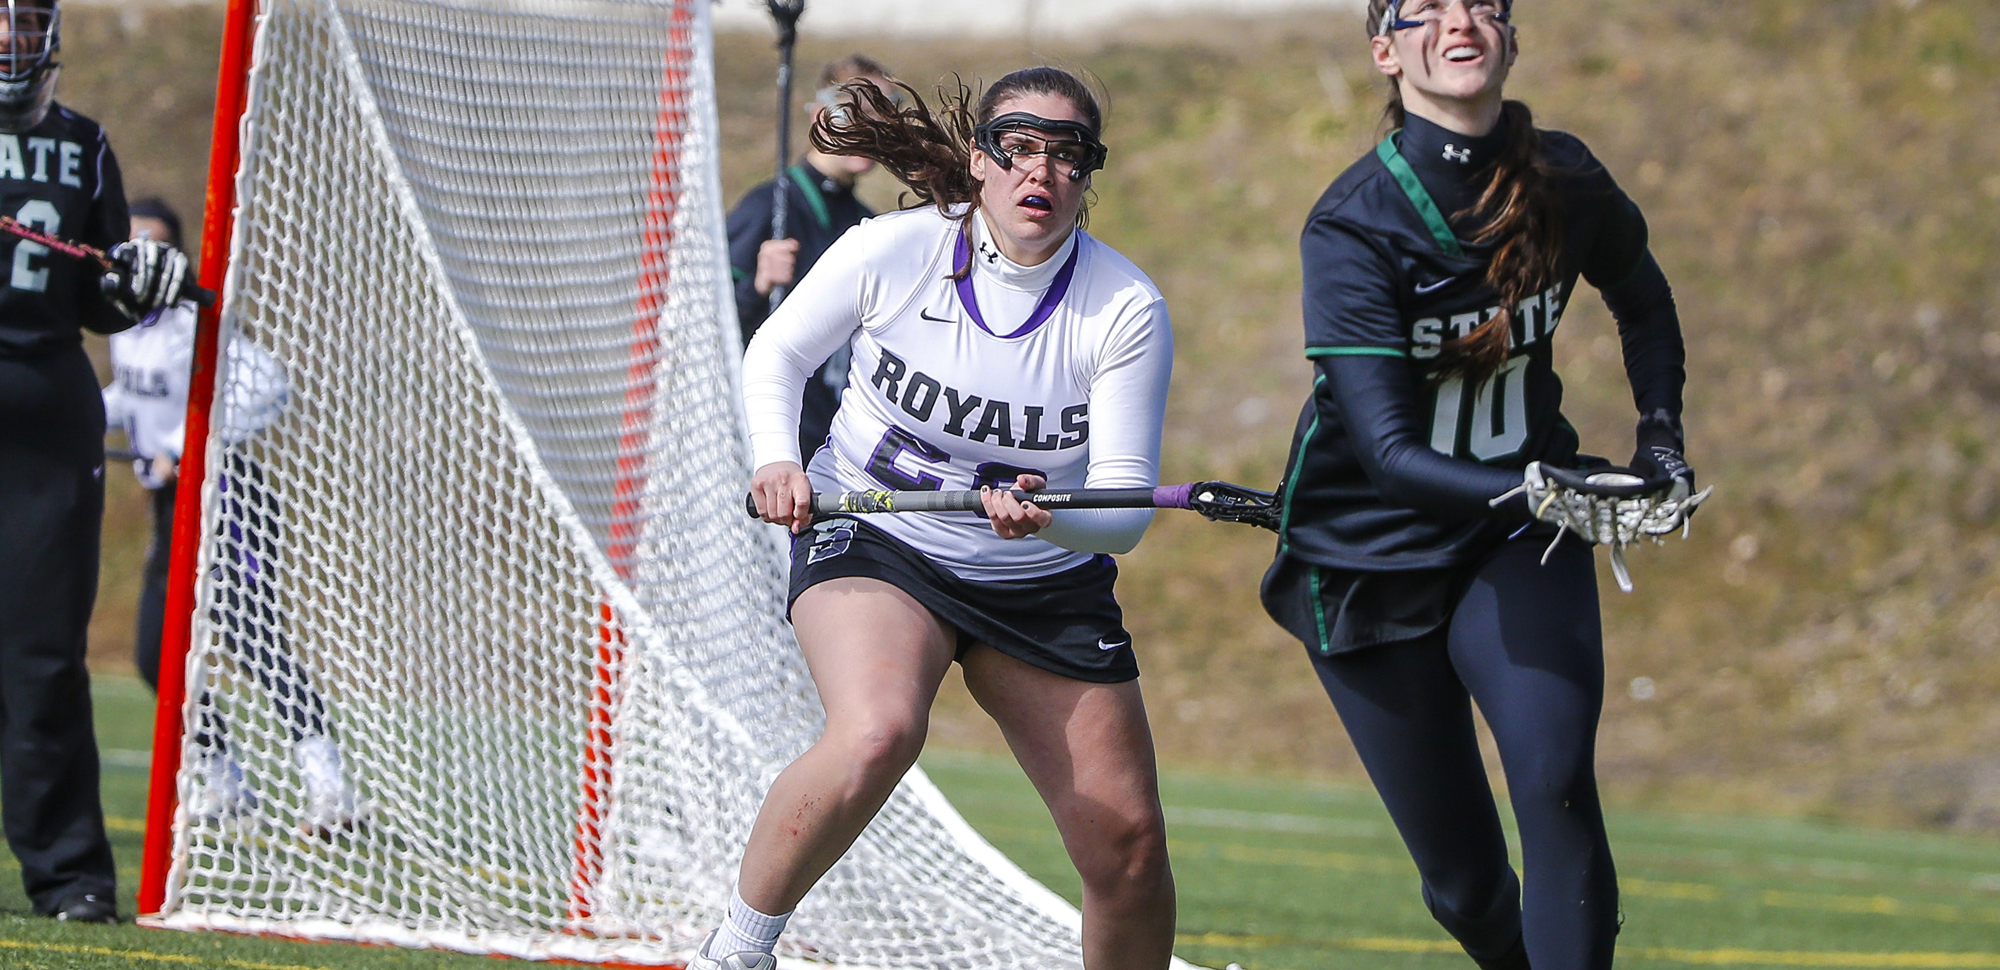 Junior Morgan Windisch scored three goals, recorded two assists, and had three ground balls, leading the Scranton women's lacrosse team to a 15-11 come from behind win at Elizabethtown on Thursday.